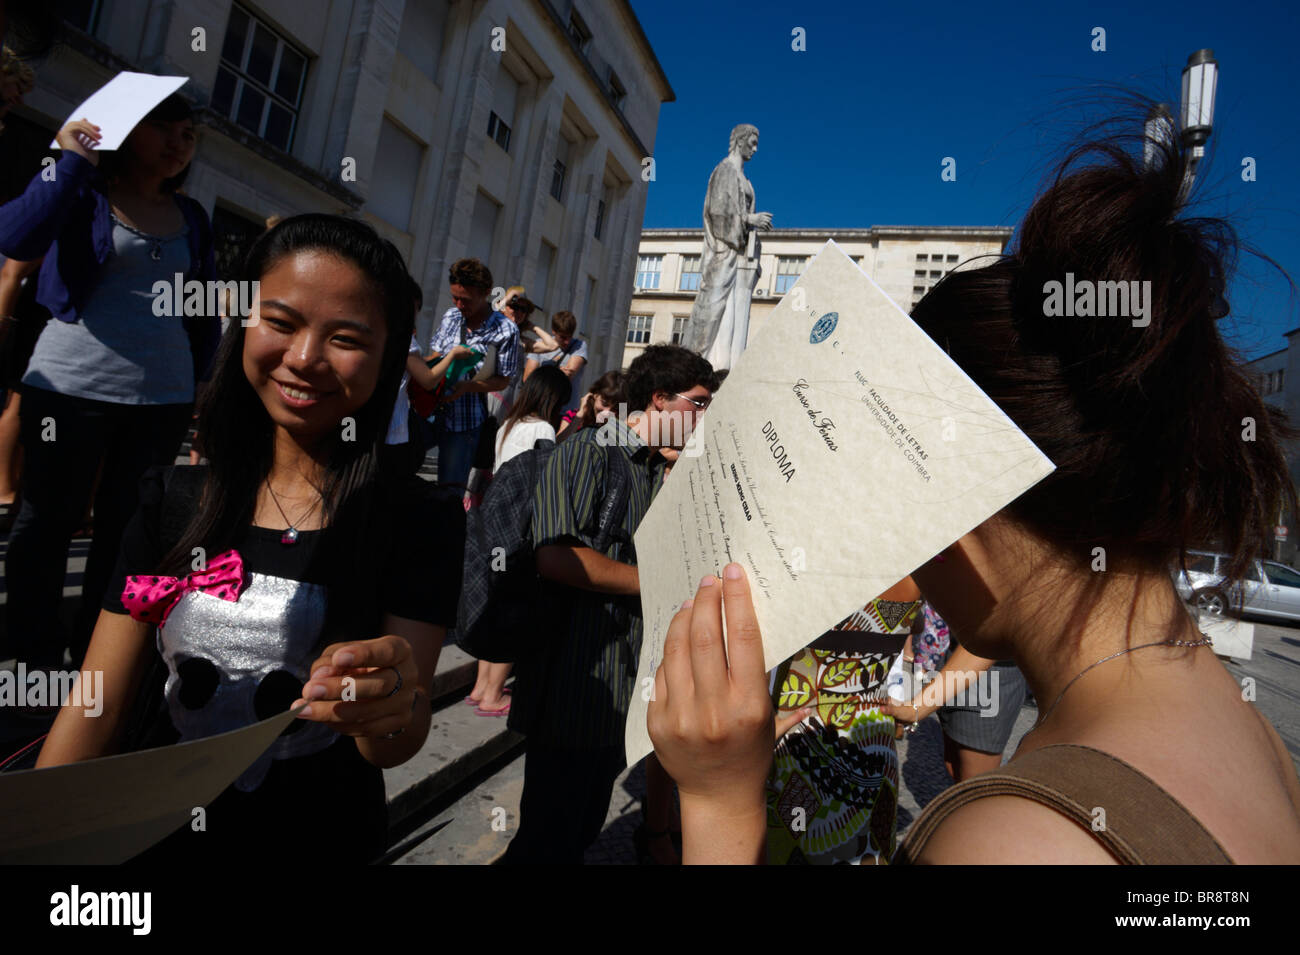 Foreign exchange students at the University of Coimbra after receiving diplomas for completing the Portuguese language Stock Photo